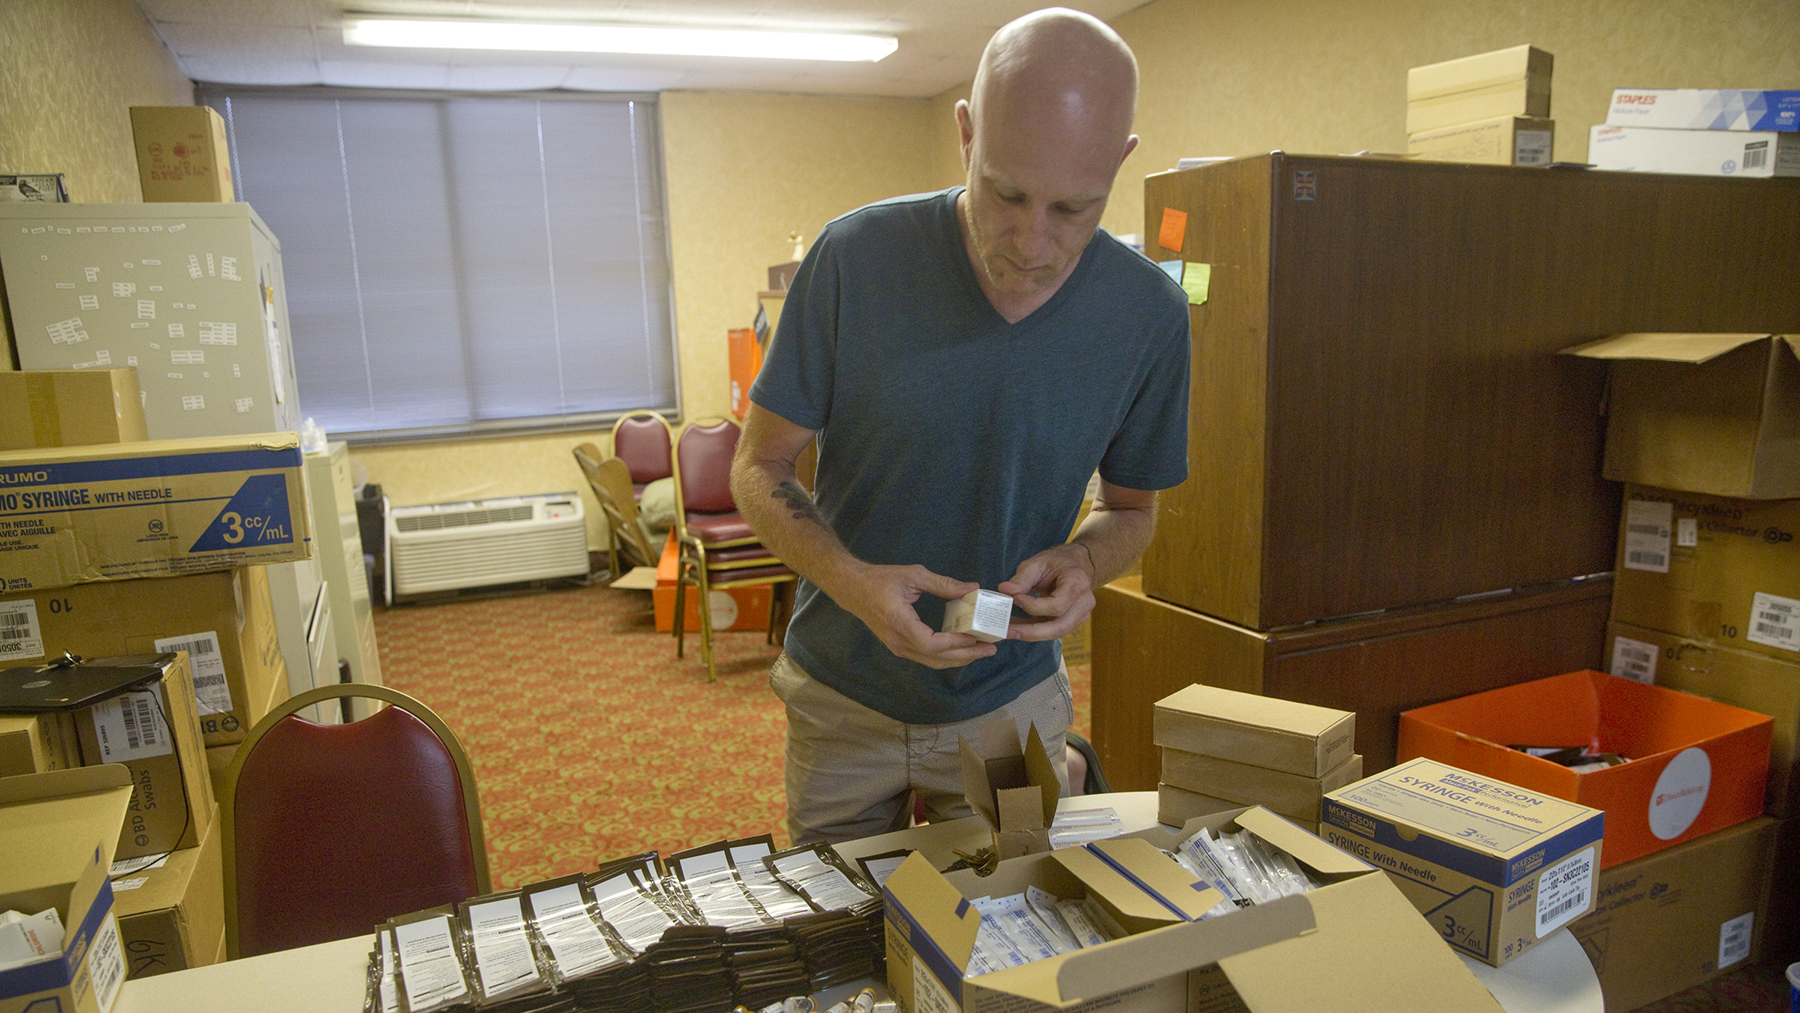 Lawson Koeppel of Virginia Harm Reduction Coalition assembles naloxone kits in Roanoke, Virginia. The group distributes the kits so people at risk of overdose have access to naloxone, which can save lives if administered quickly. (Photo by Stephanie Klein-Davis for Direct Relief)